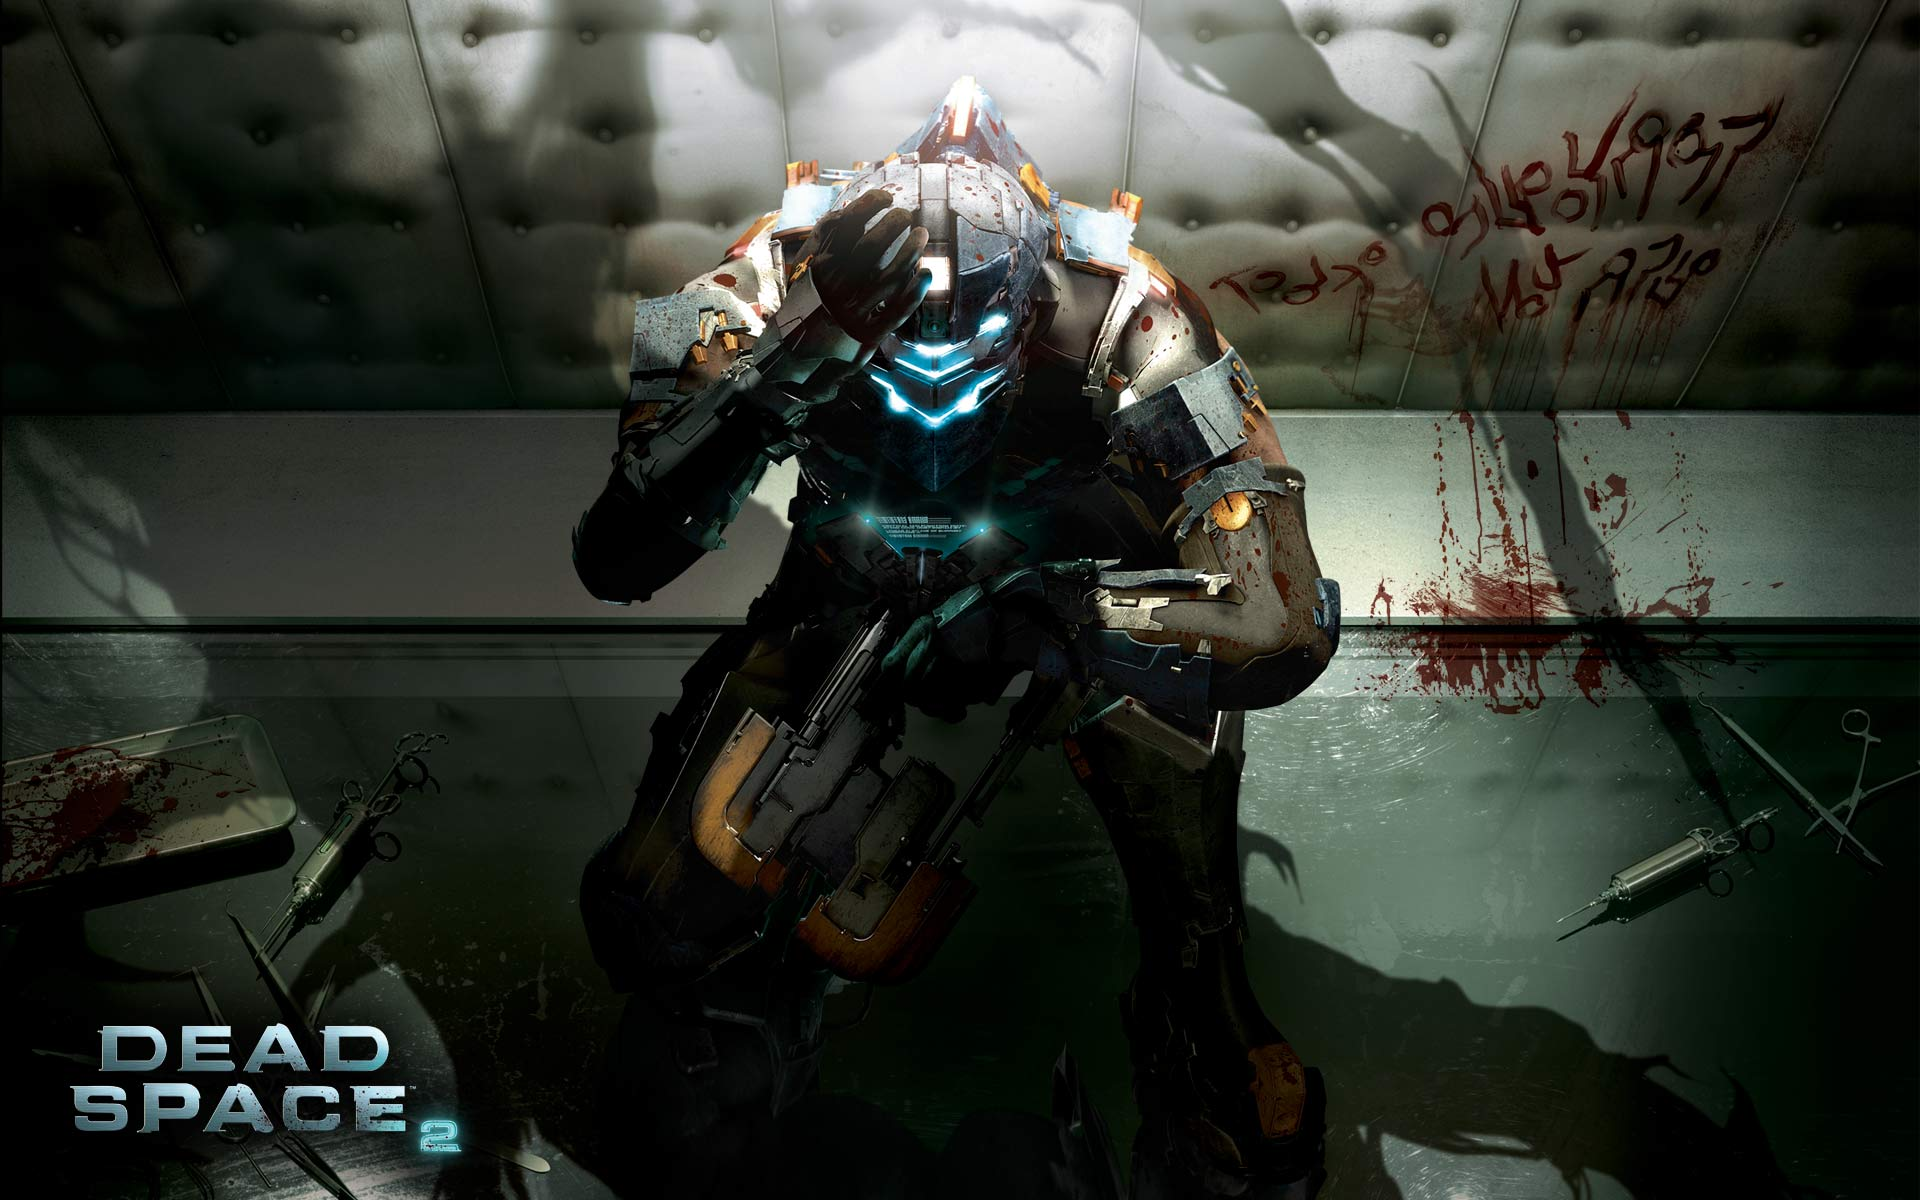 Dead Space 2 Game Wallpapers HD Wallpapers 1920x1200